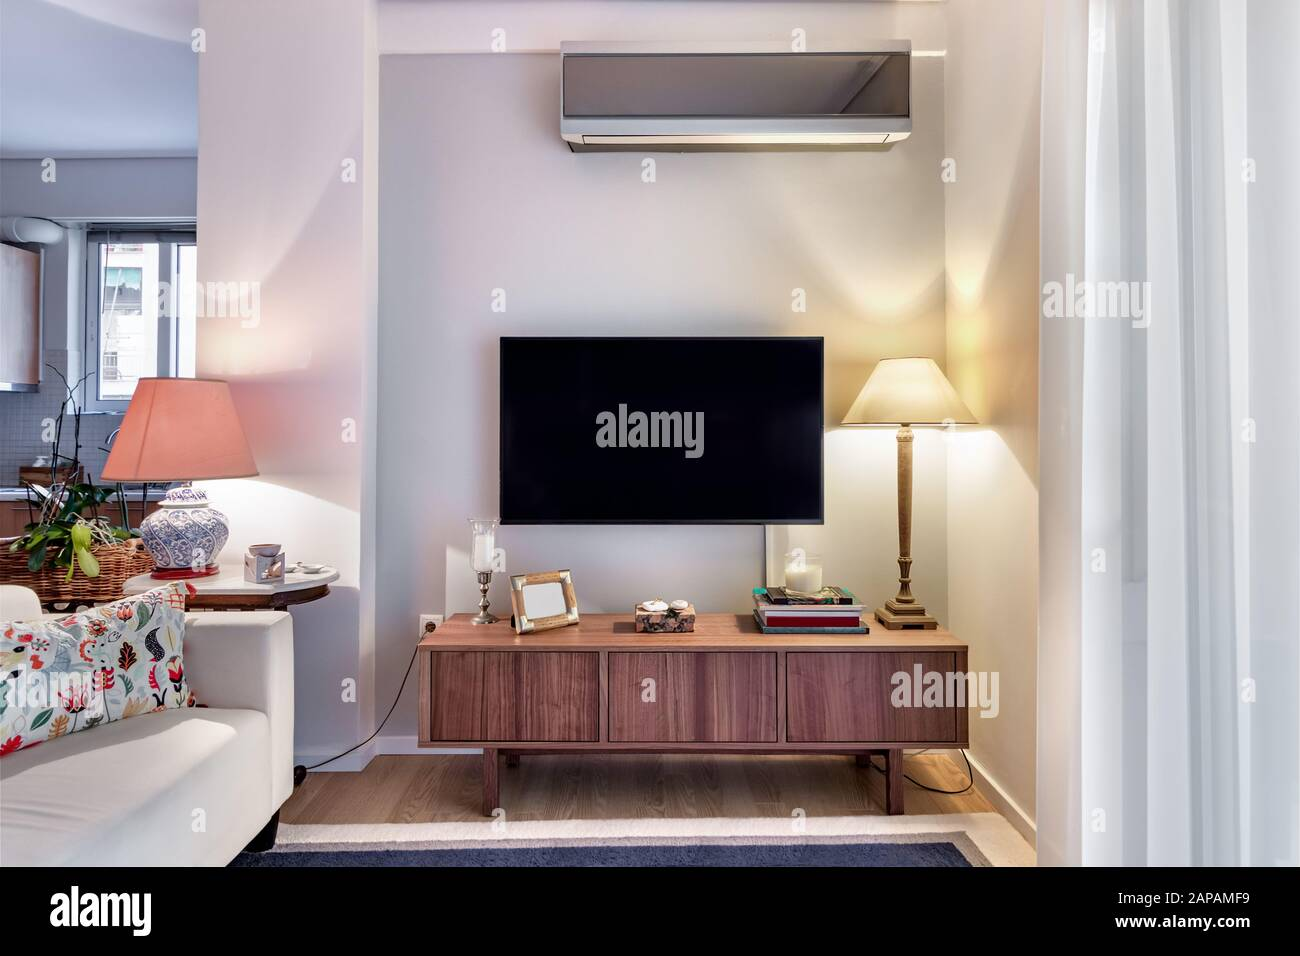 Wooden Cabinet With Flat Tv And Lamps On A Small Living Room Stock Photo Alamy